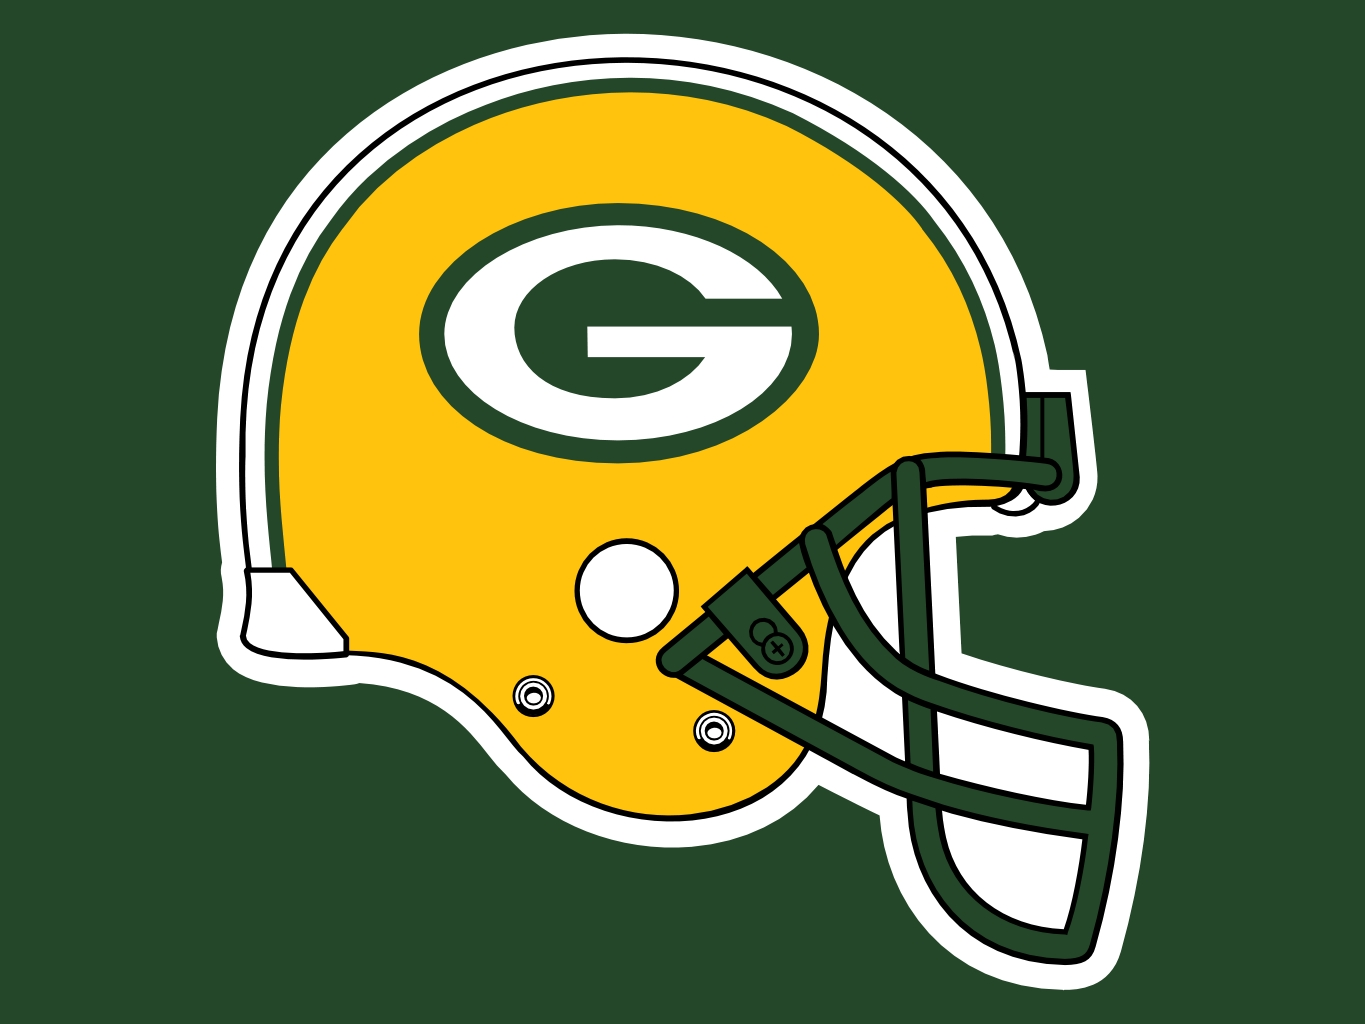 Green bay packer clipart free picture library library 72+ Green Bay Packers Clip Art | ClipartLook picture library library